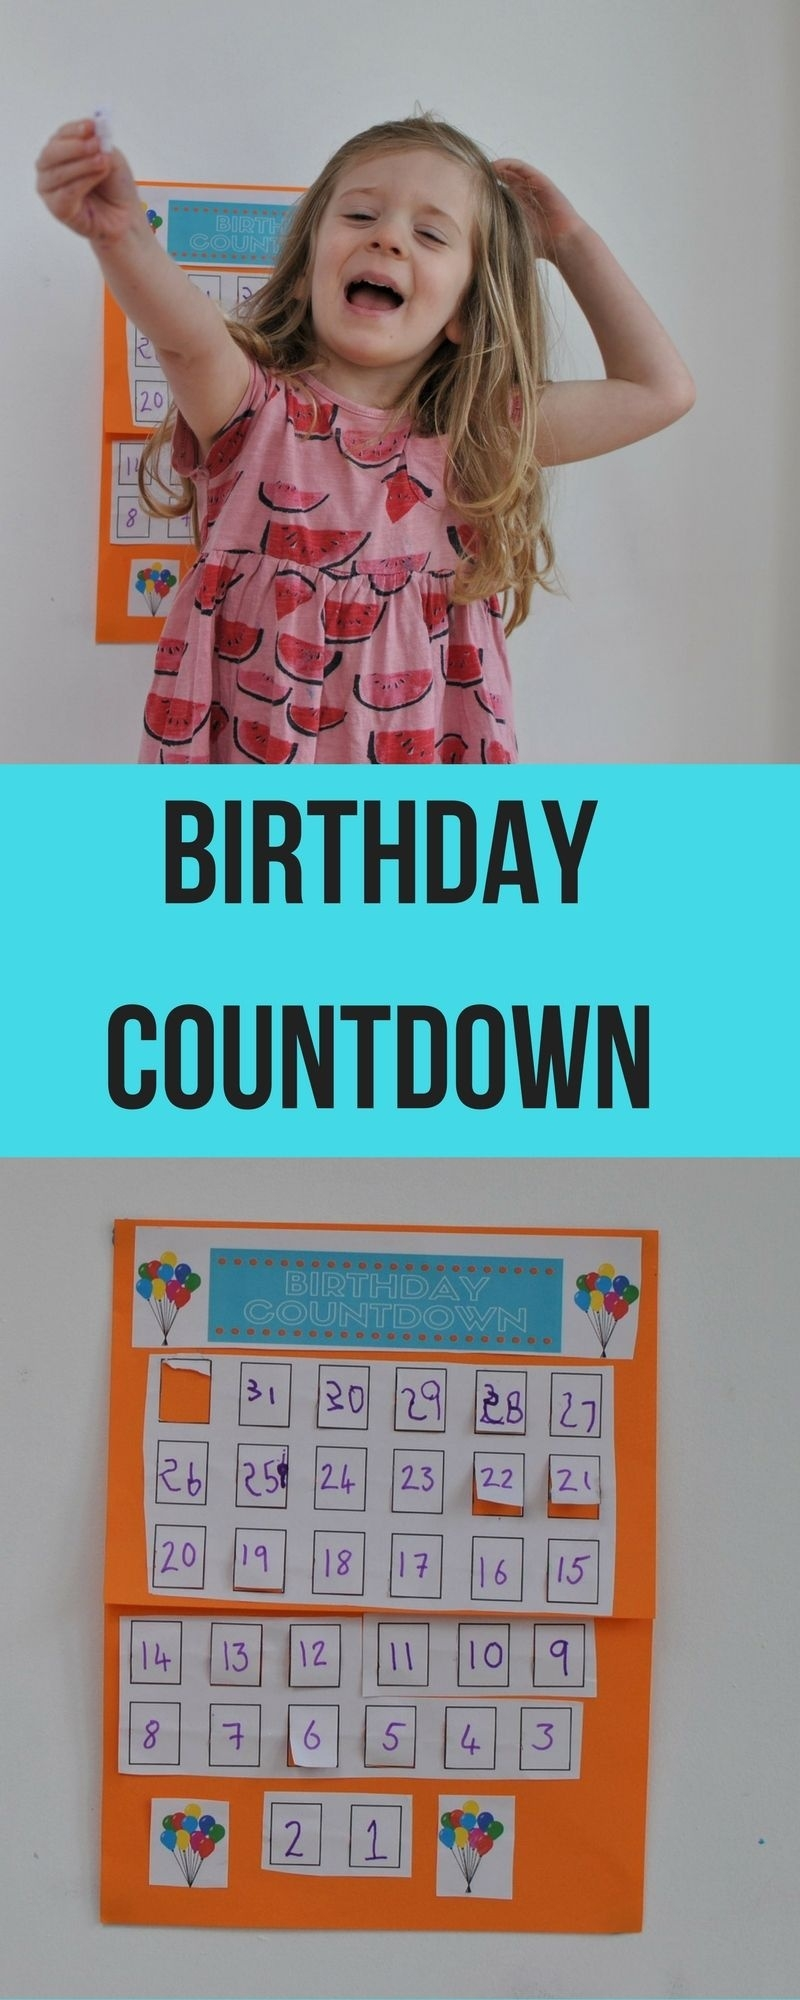 Making A Birthday Countdown Calendar | Craft Ideas For The Little_Countdown Calendar To My Birthday